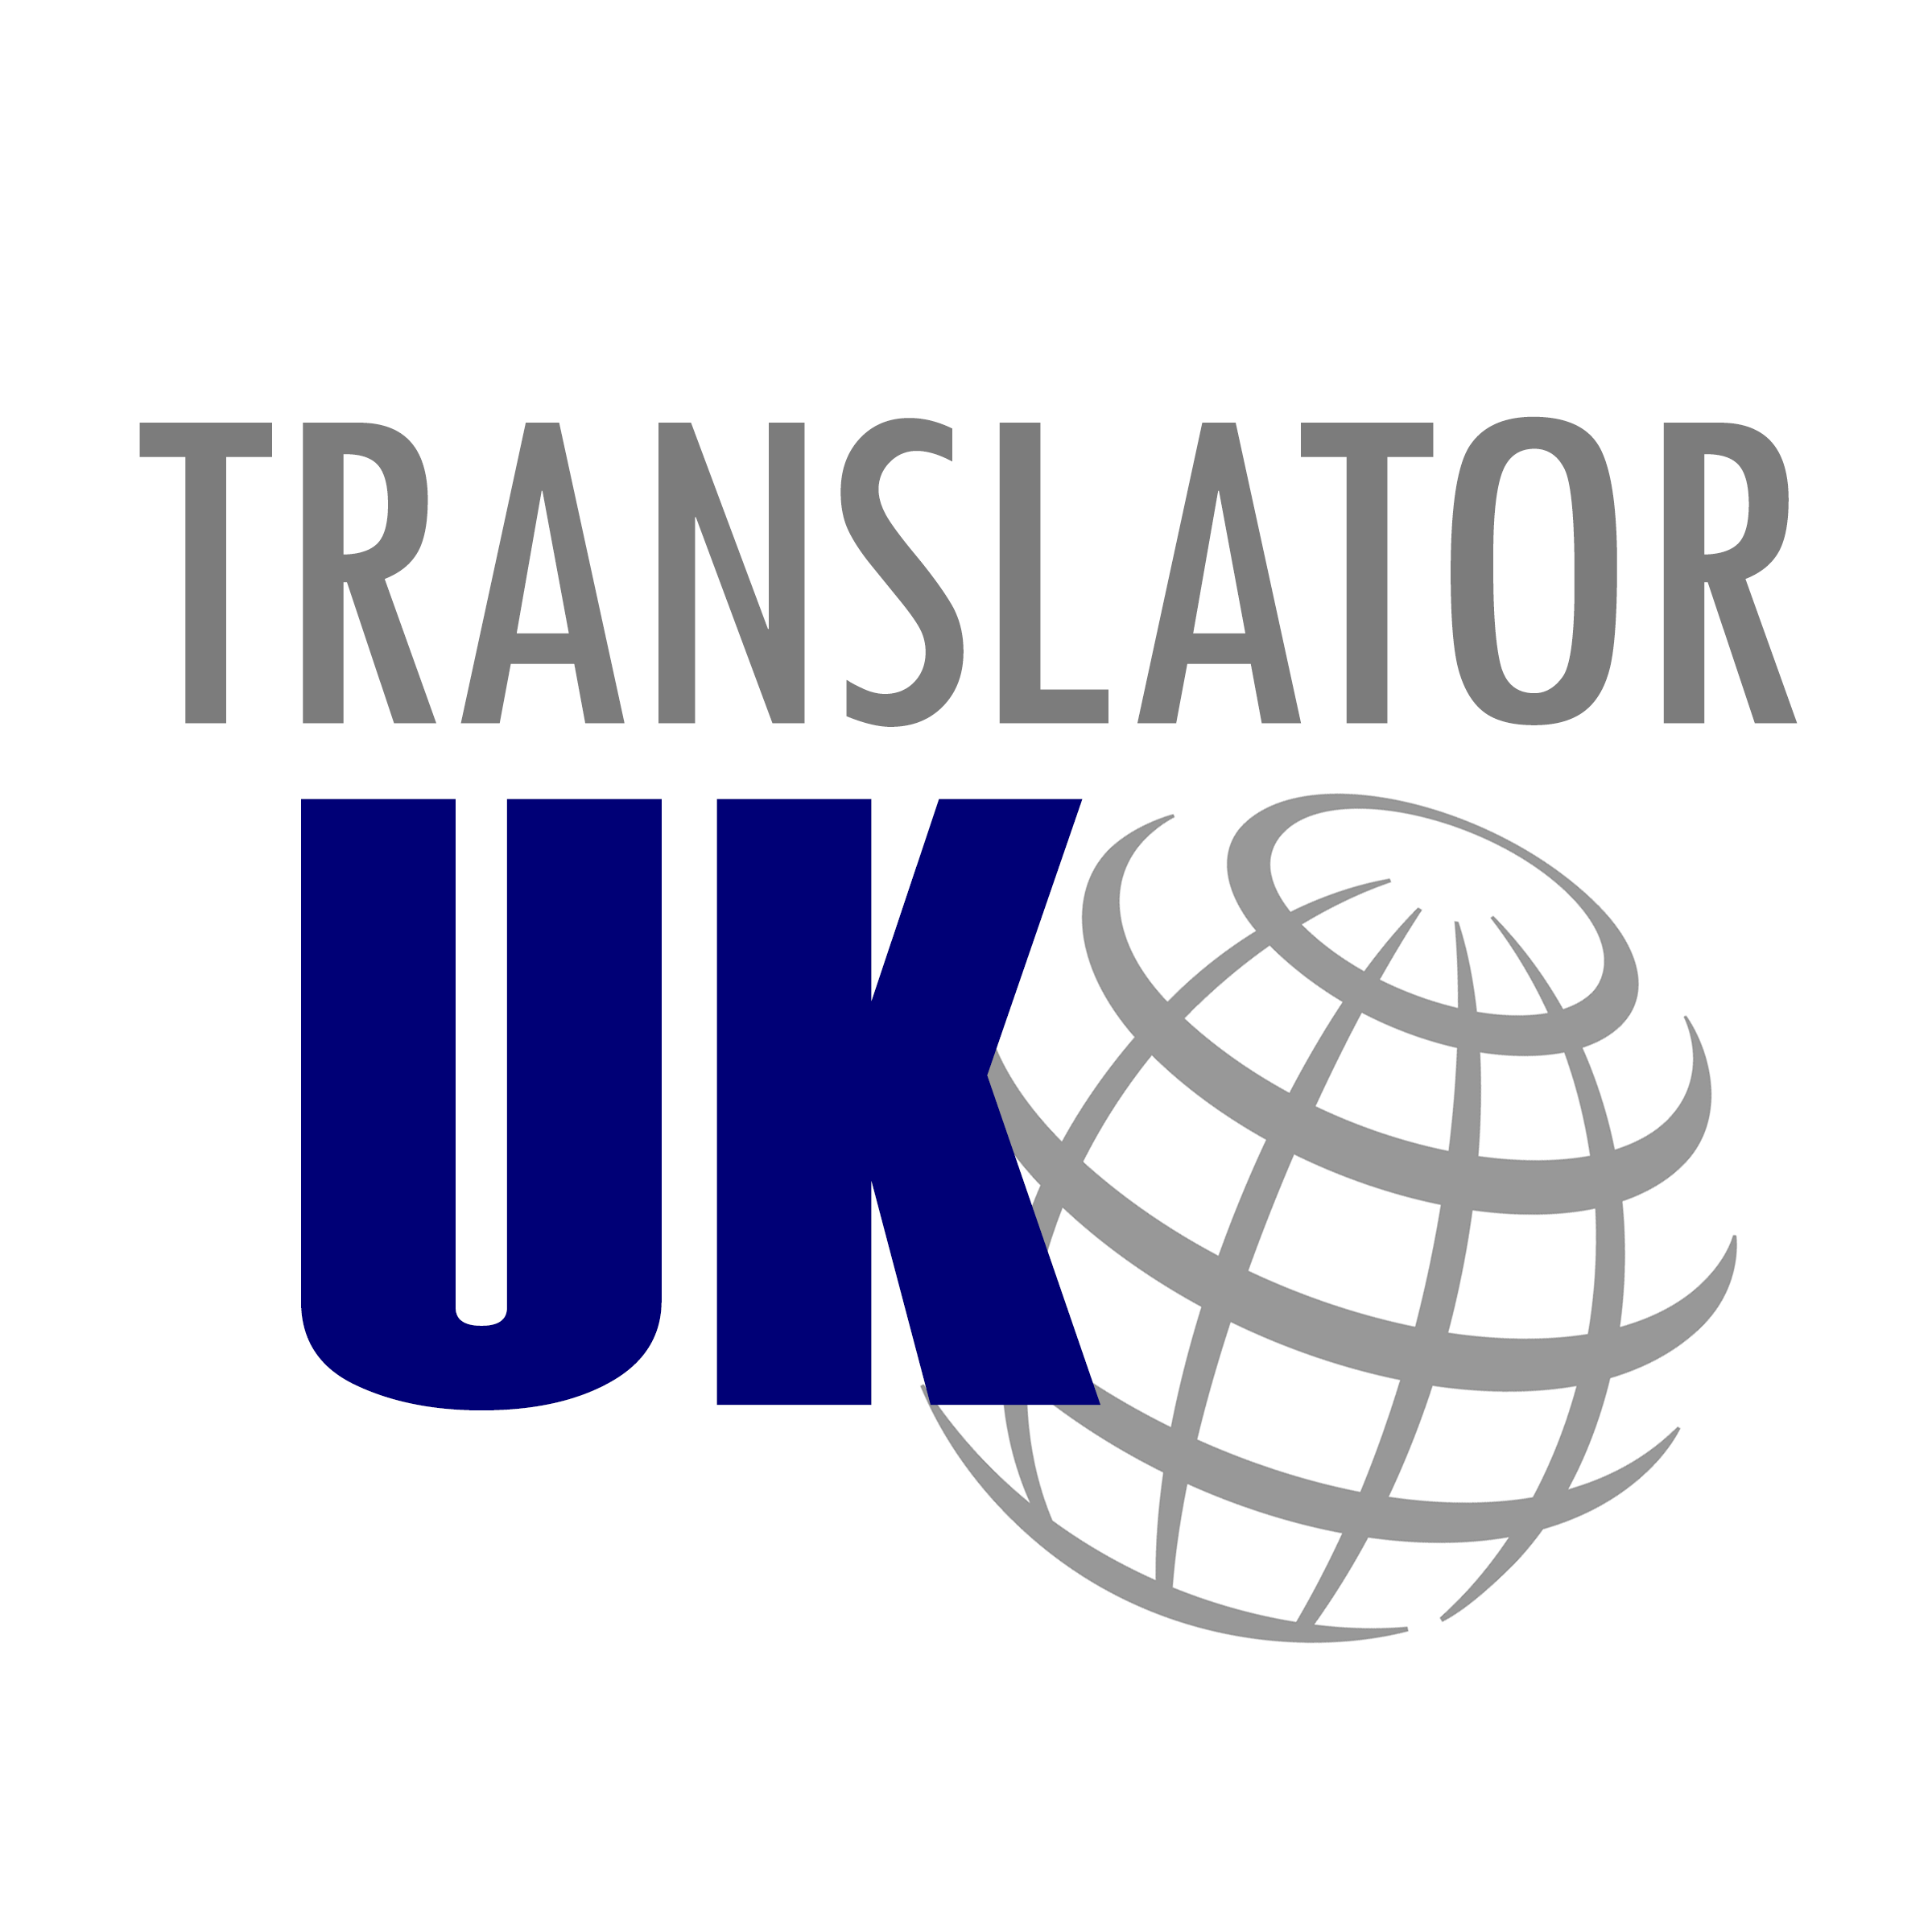 Translator UK | English to Hindi Translator Jobs